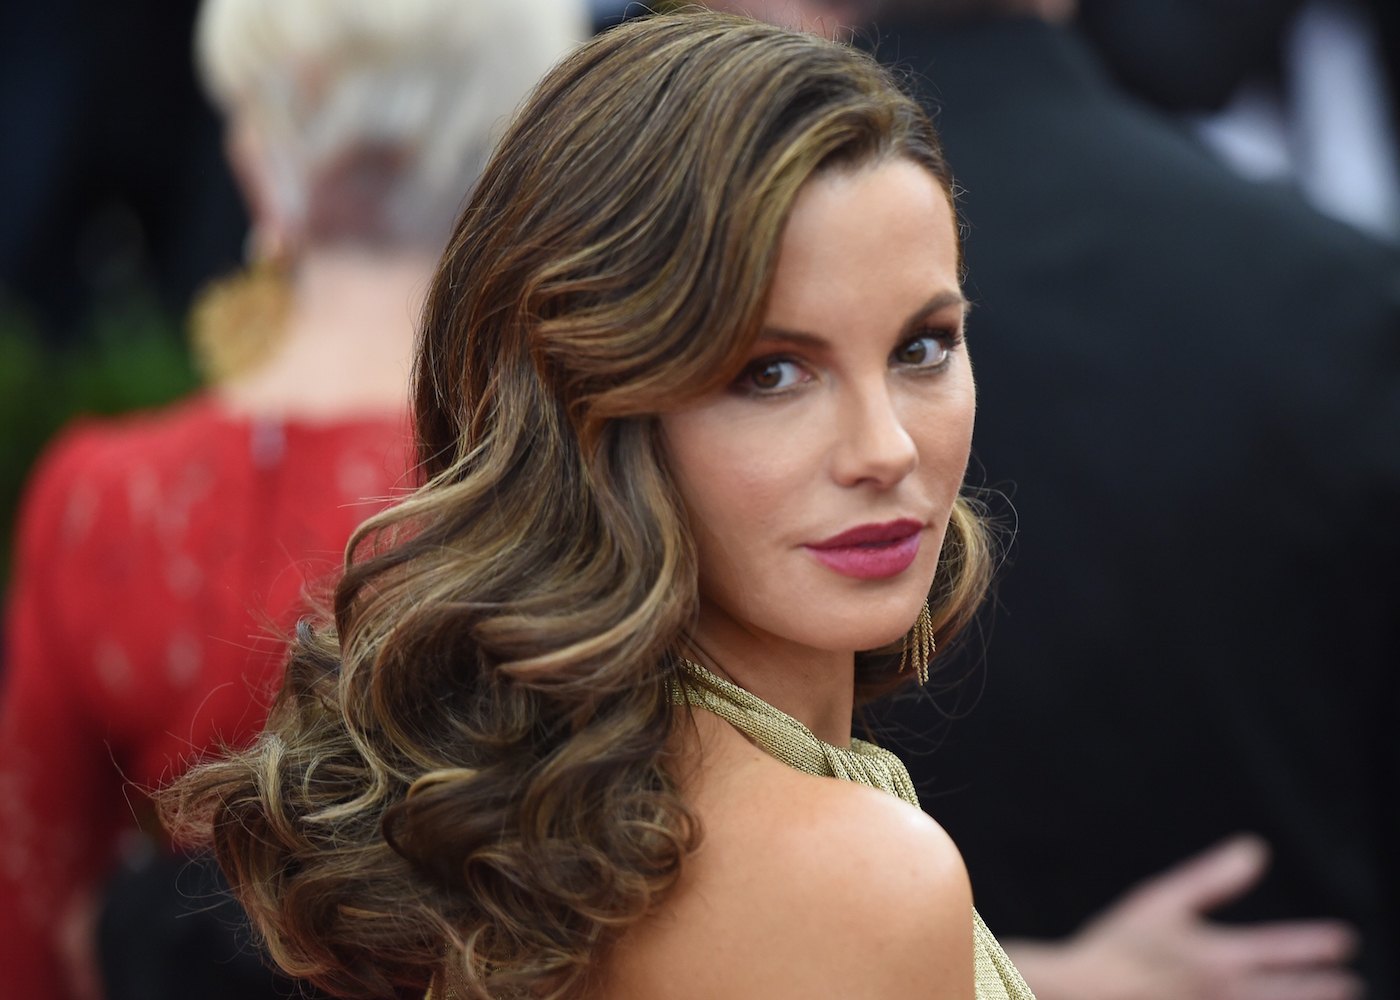 Kate Beckinsale arrives at the 2015 Metropolitan Museum of Art's Costume Institute Gala benefit in honor of the museums latest exhibit China: Through the Looking Glass May 4, 2015 in New York. AFP PHOTO / TIMOTHY A. CLARY (Photo credit should read TIMOTHY A. CLARY/AFP/Getty Images)